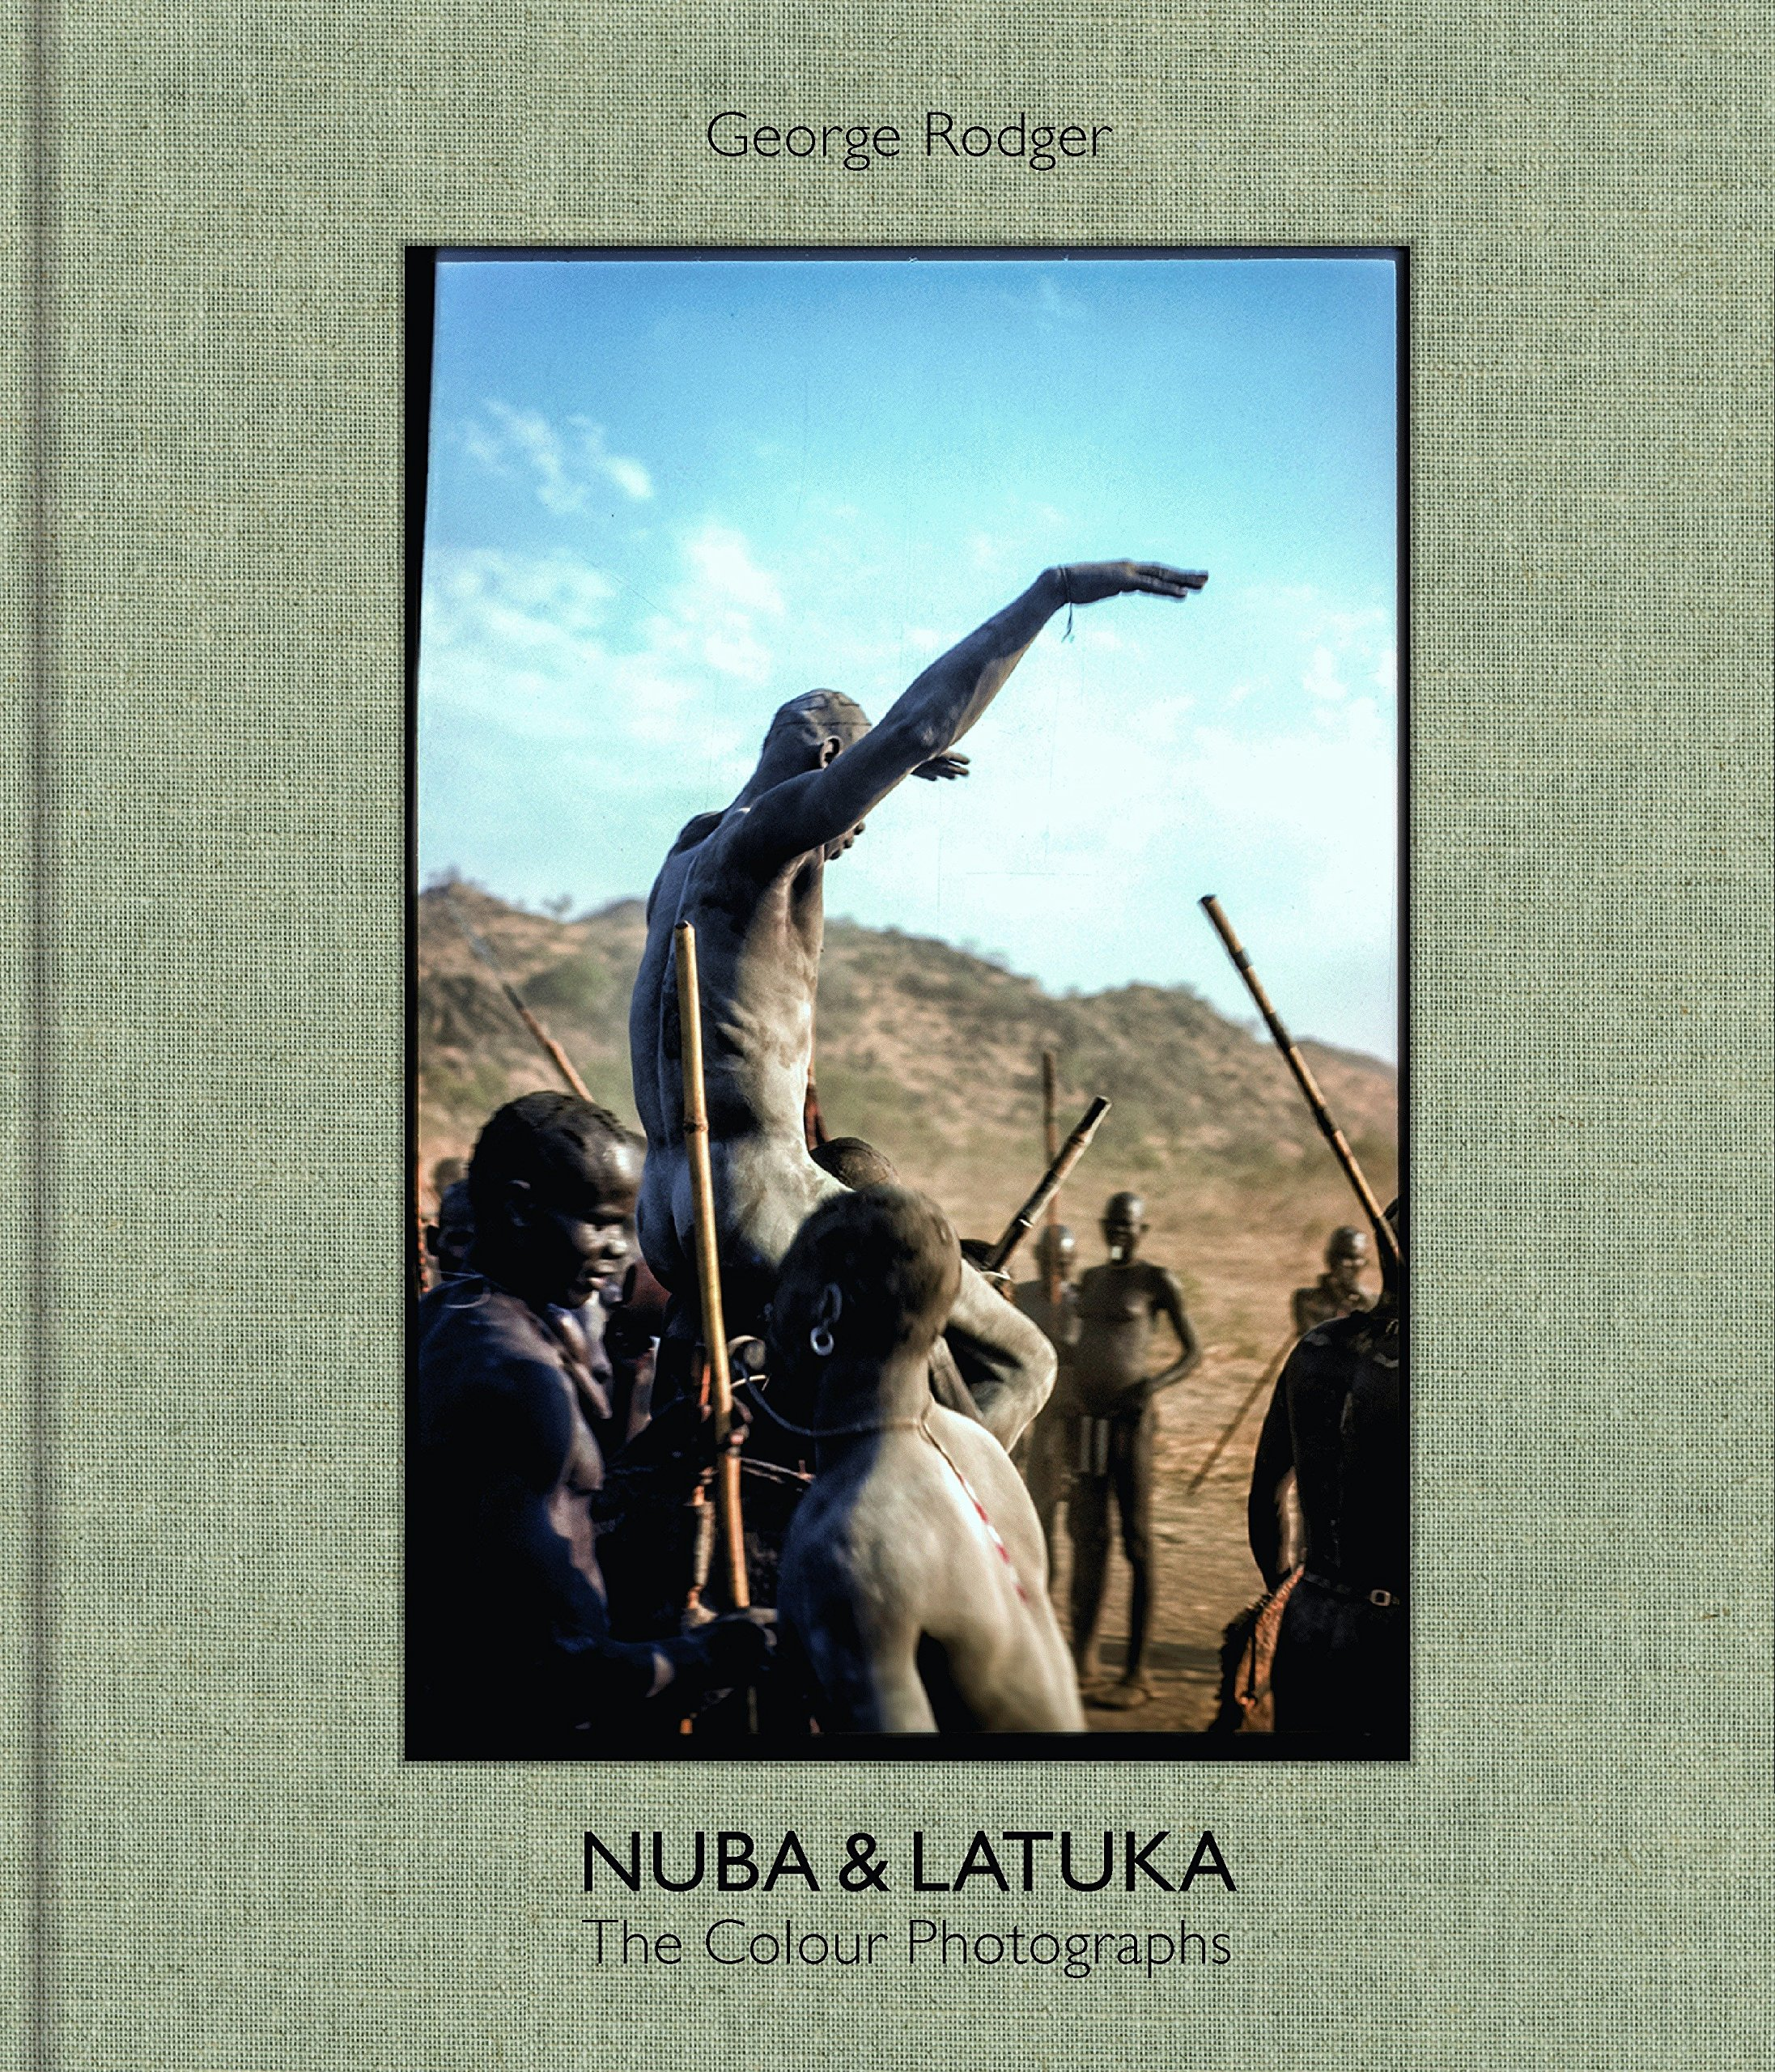 George Rodger Nuba & Latuka: The Color Photographs pdf epub